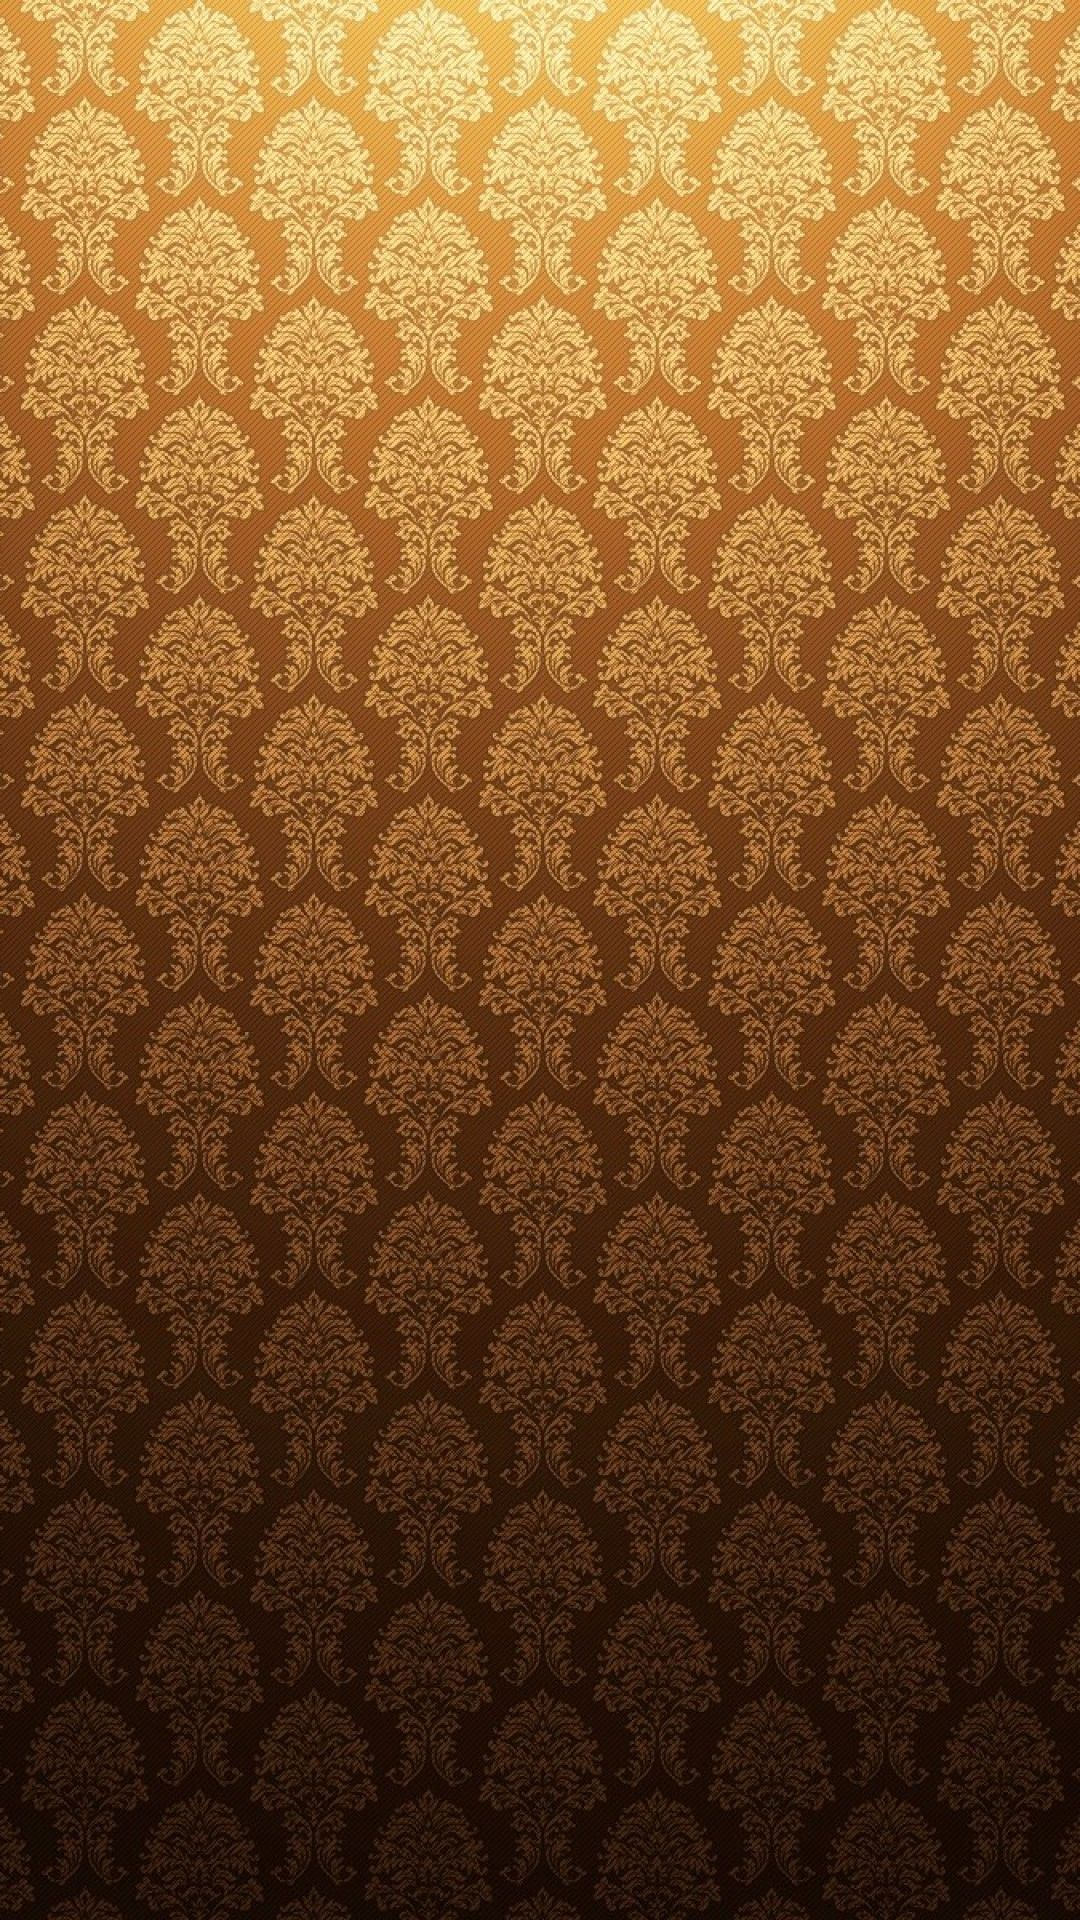 Baroque Iphone Wallpapers Top Free Baroque Iphone